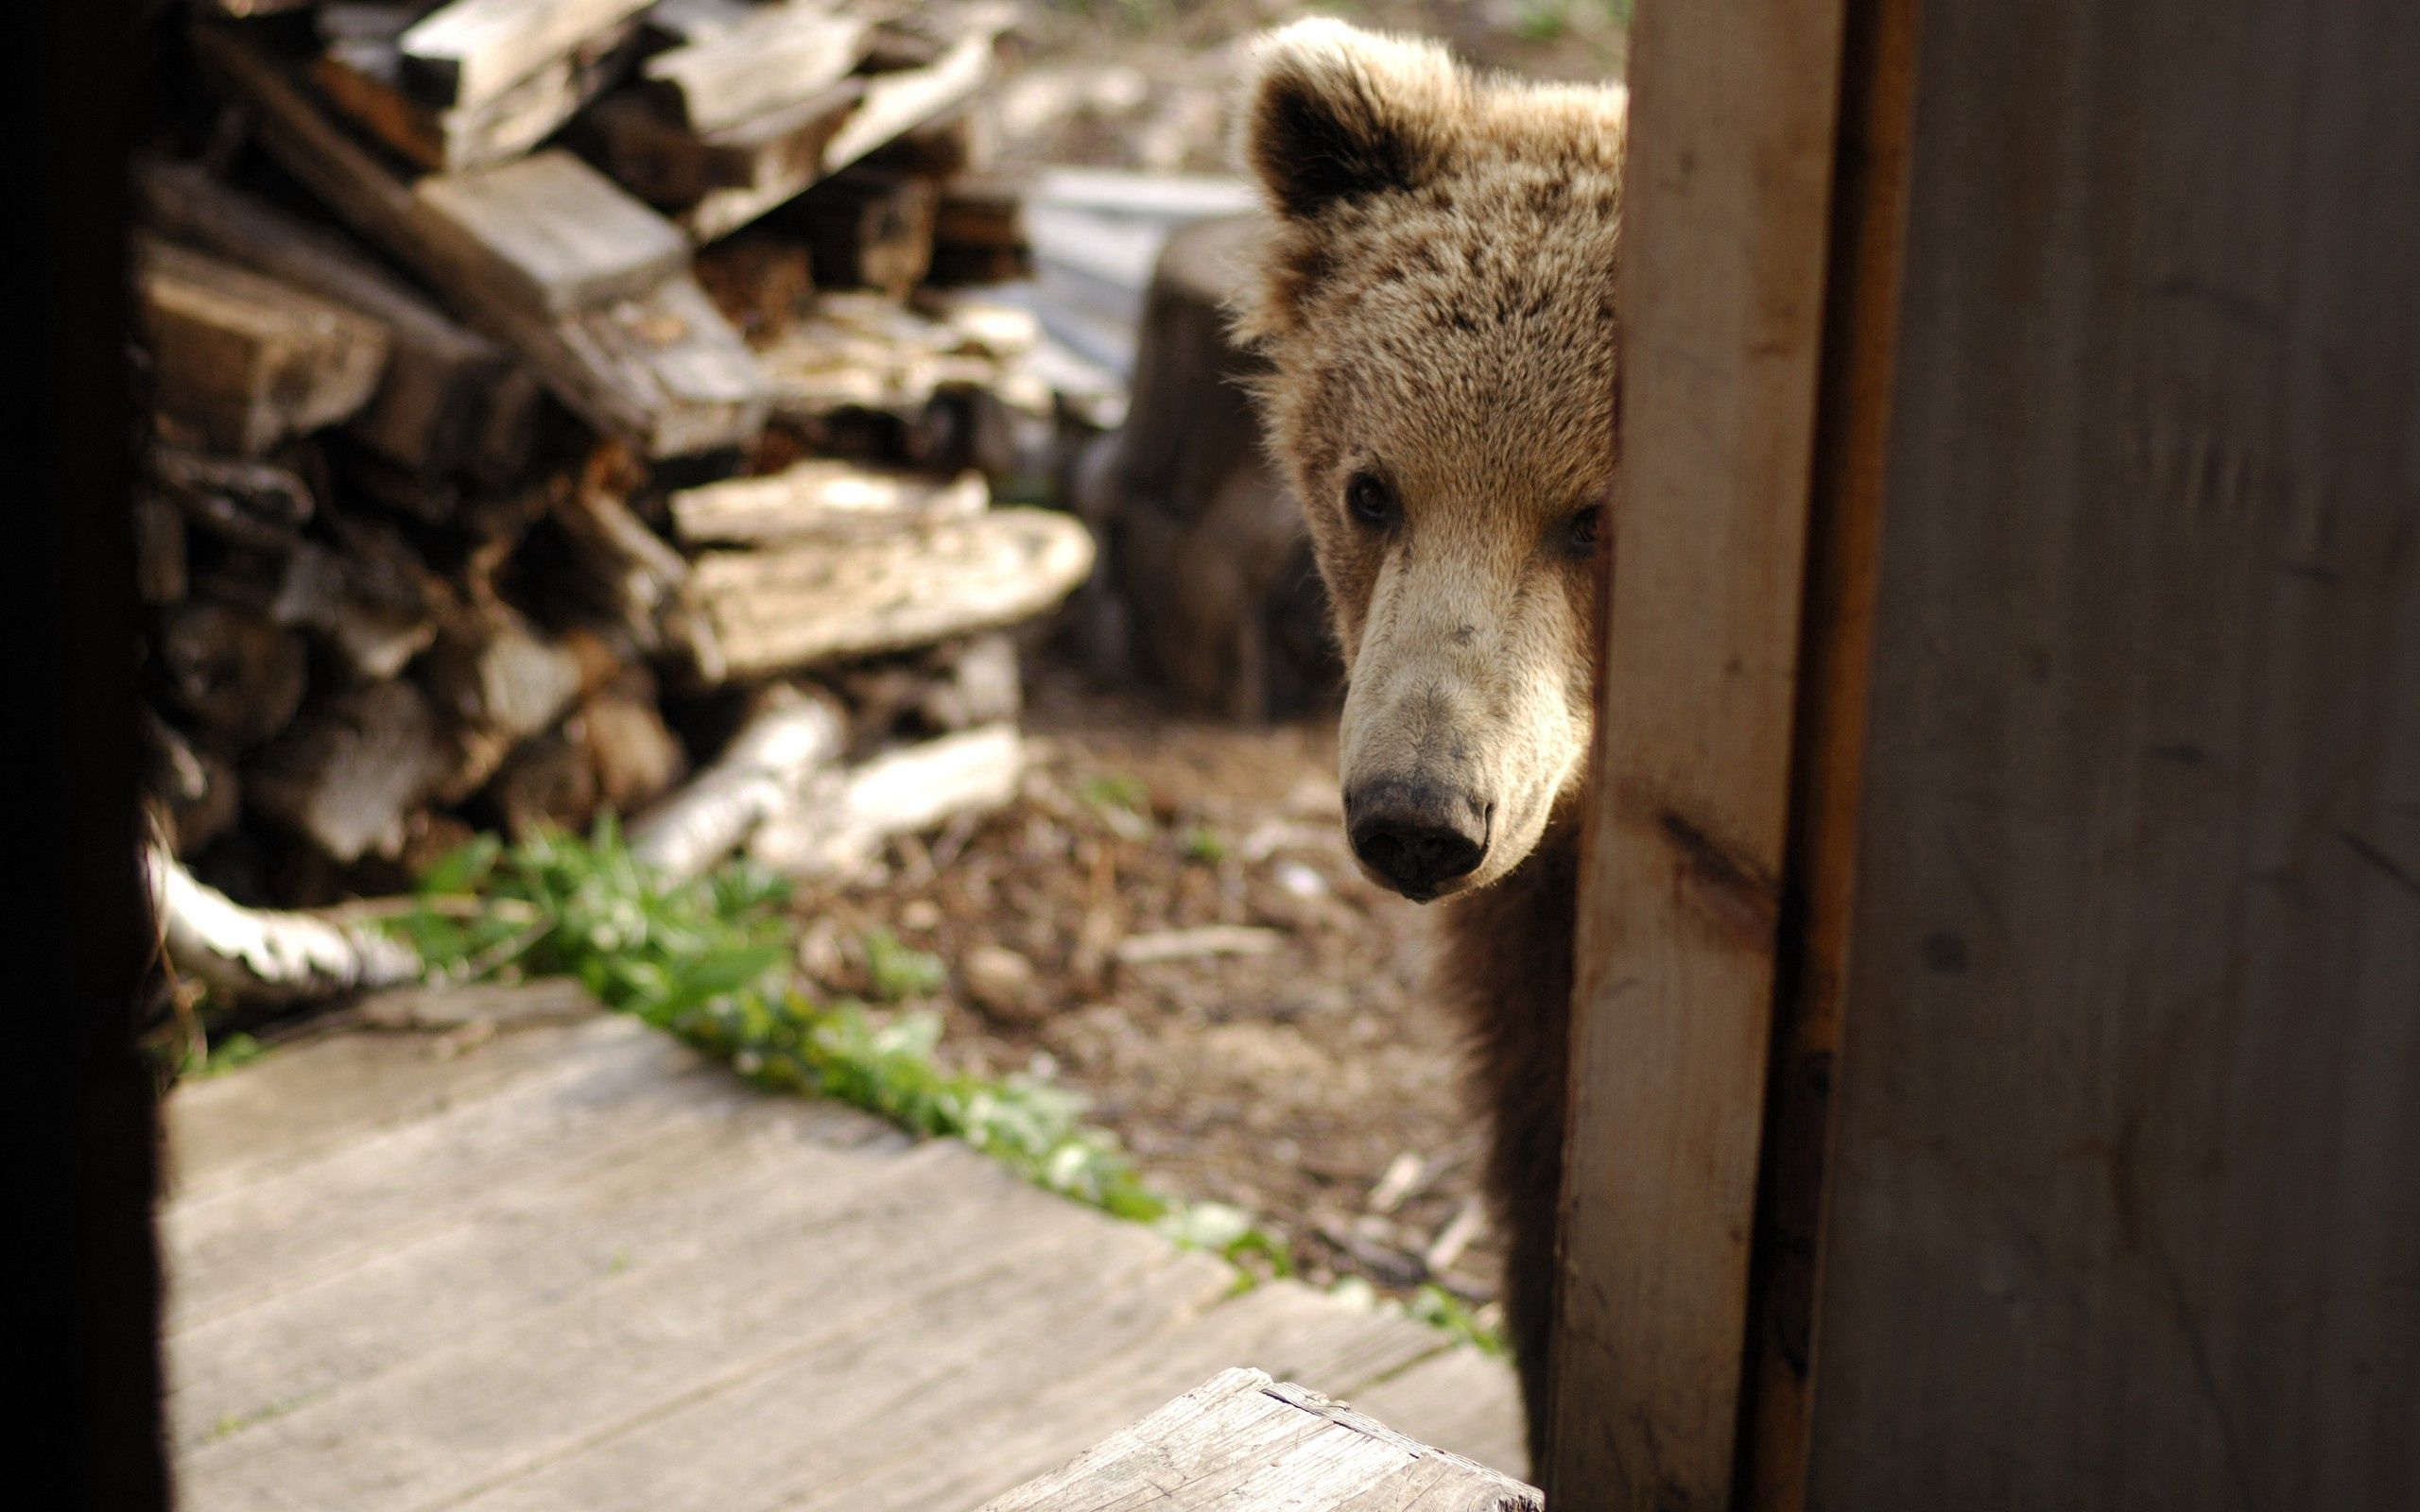 134661 download wallpaper Animals, Bear, Muzzle, Peek Out, Look Out, Door, Firewood, Curiosity screensavers and pictures for free